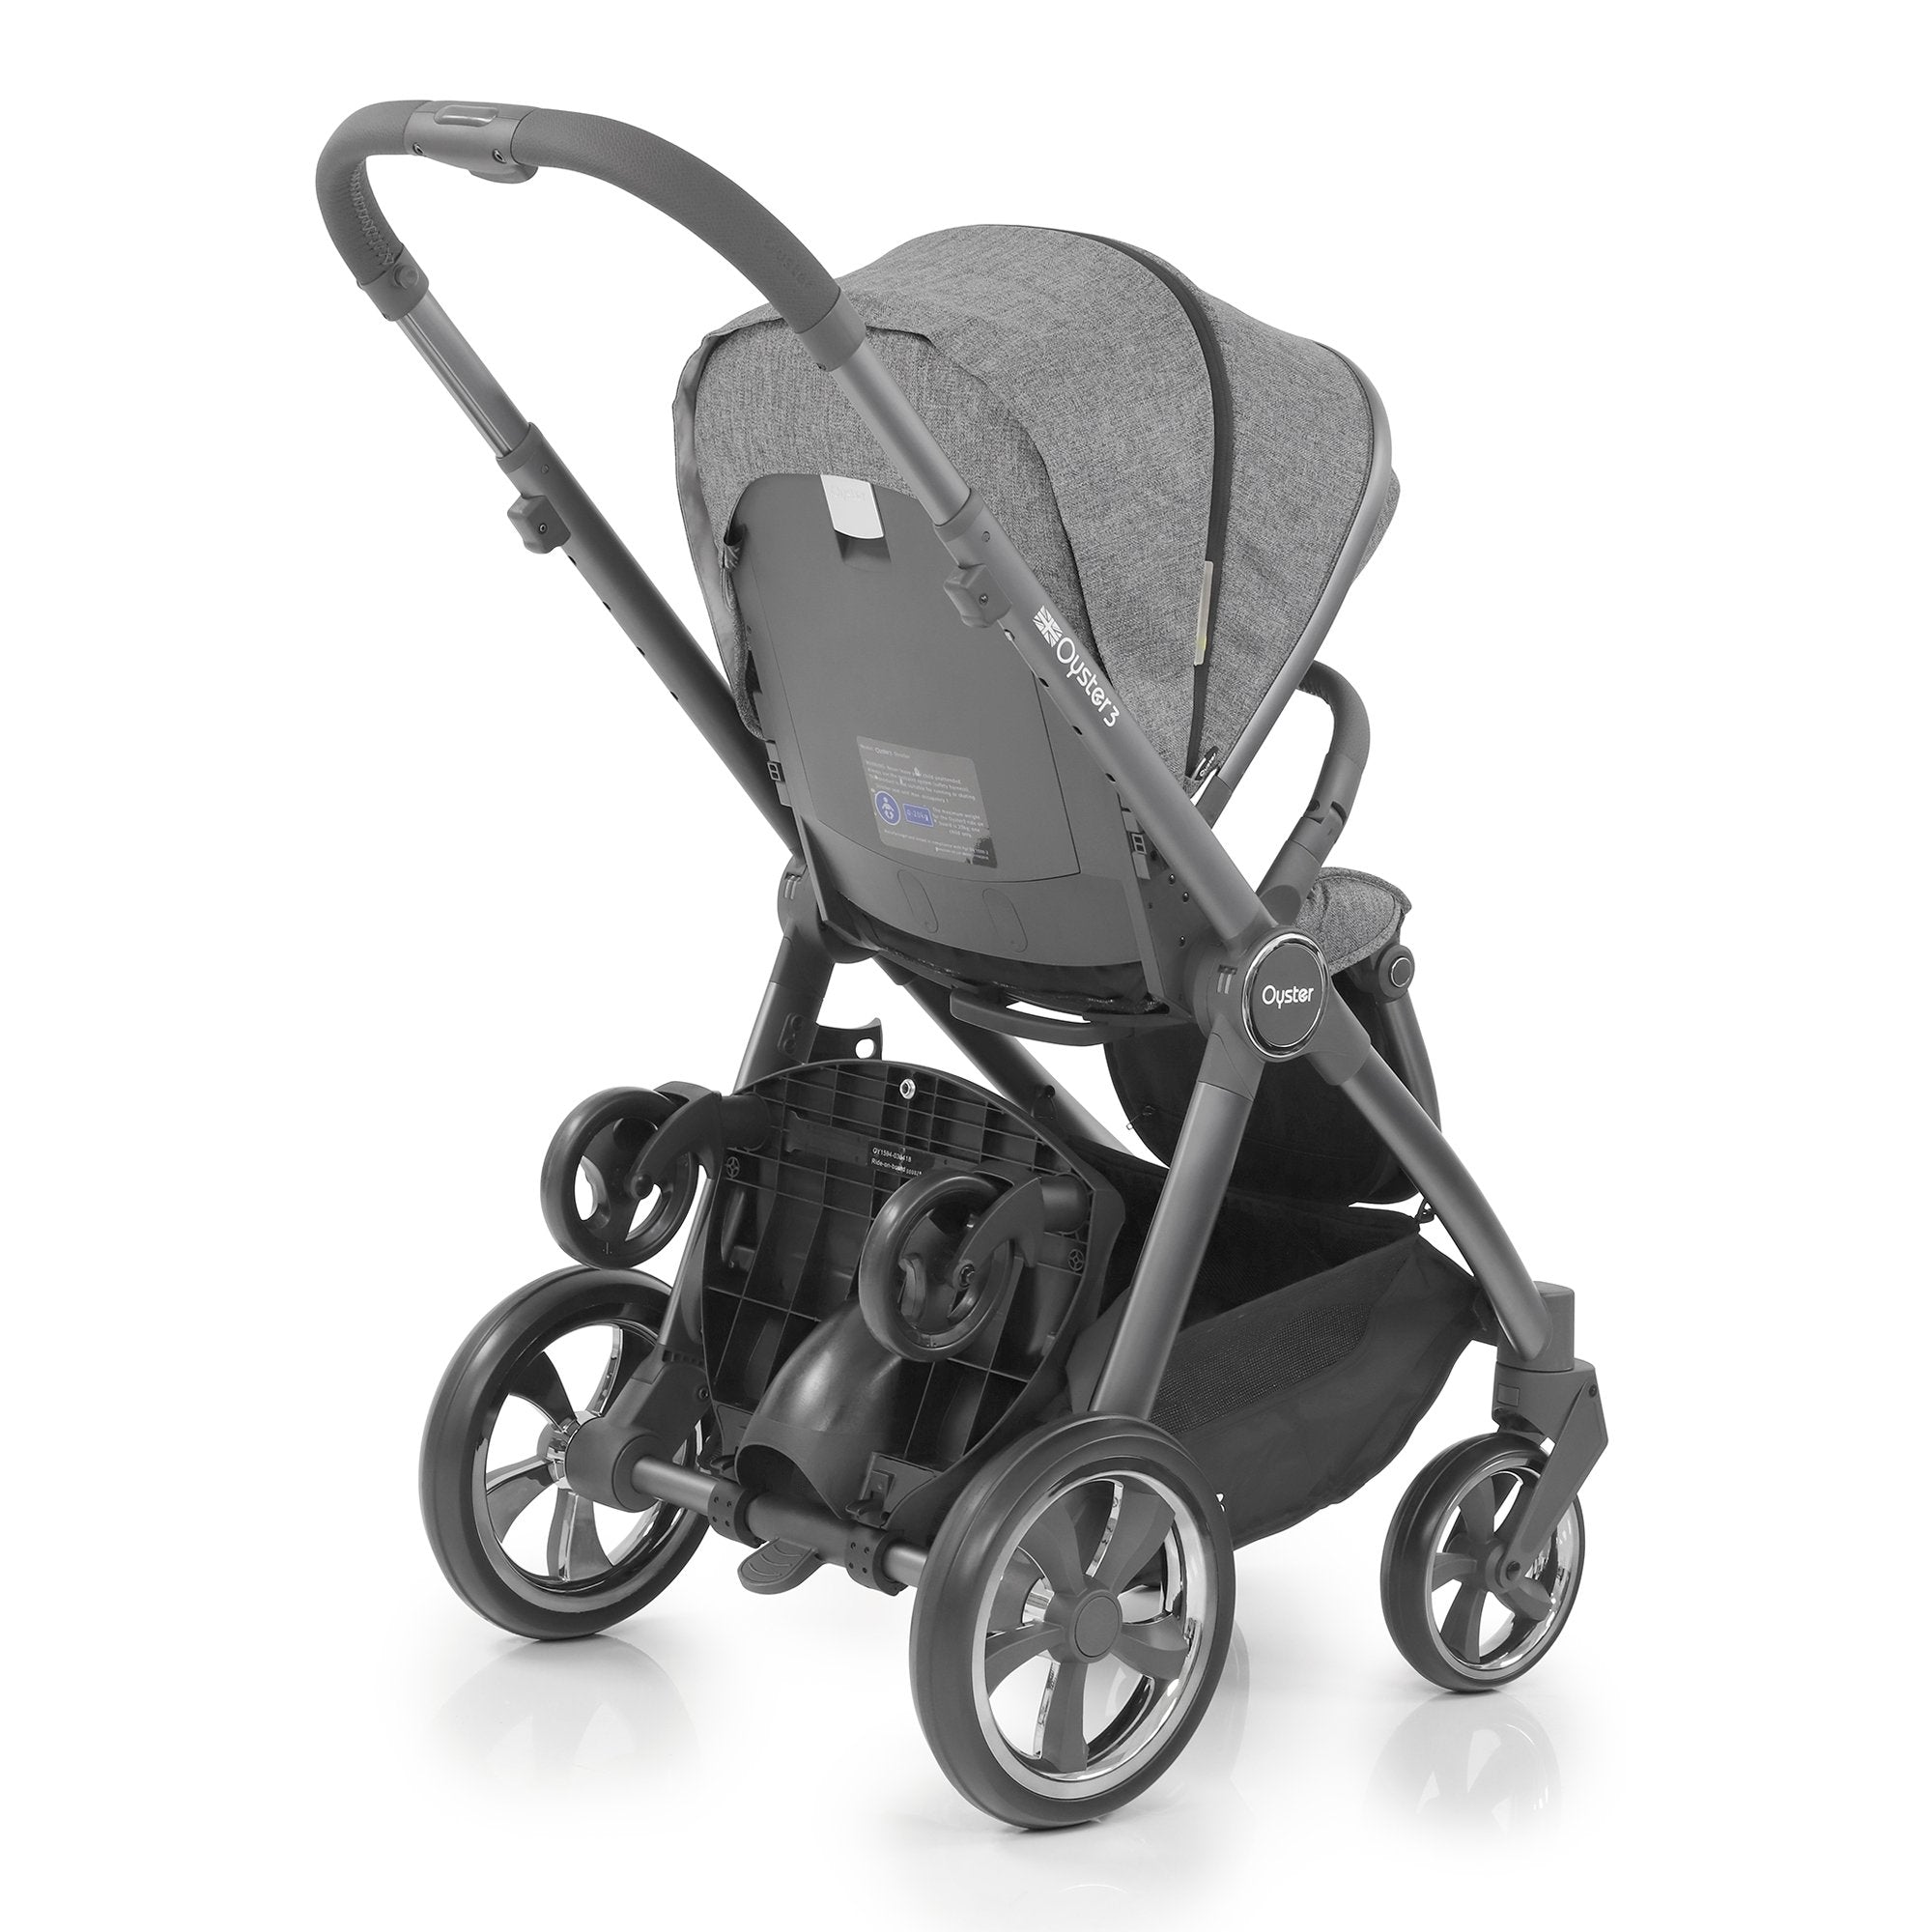 BabyStyle Oyster 3 Ride on board - Pushchair Expert